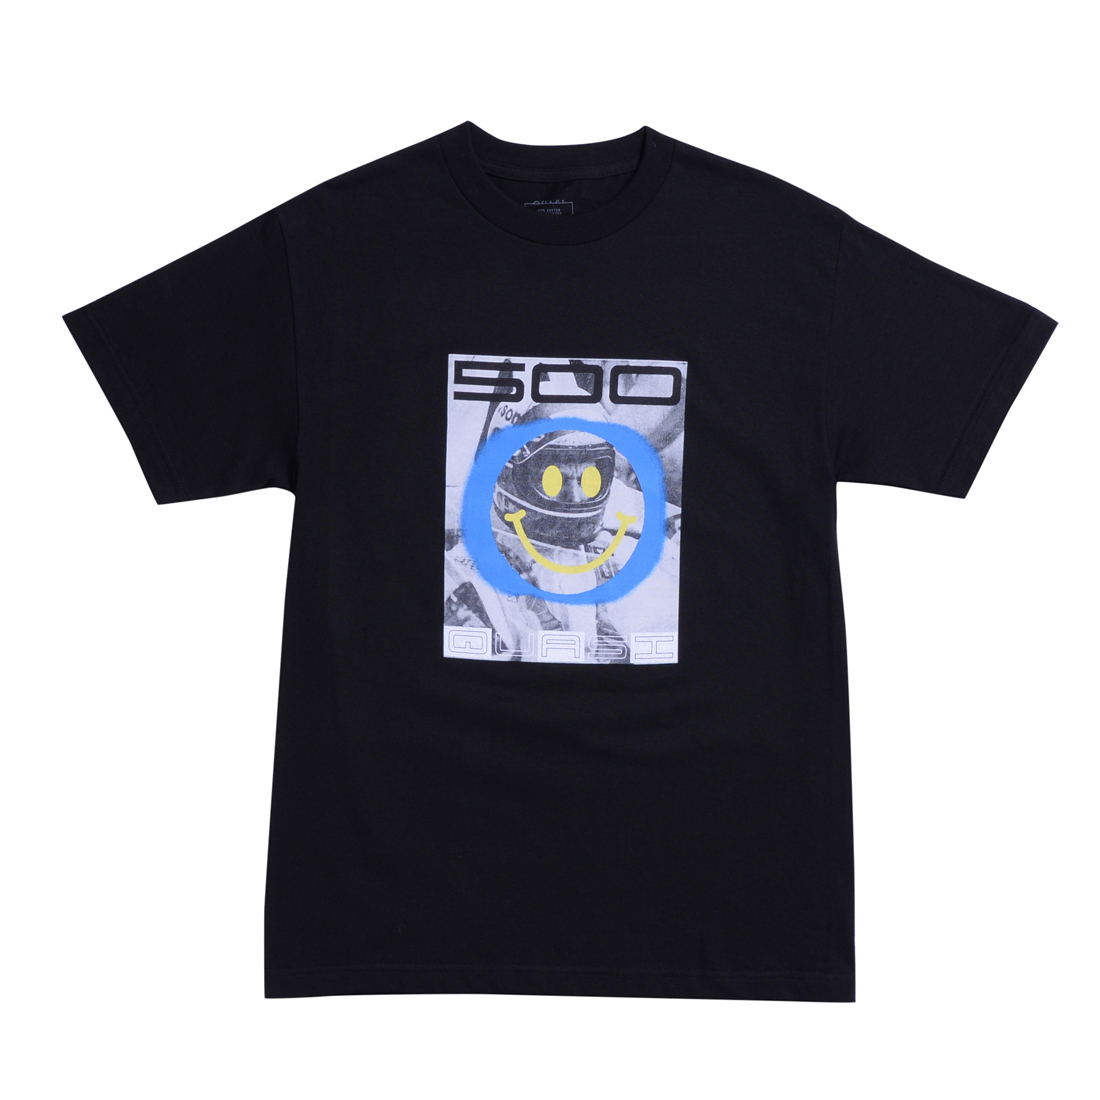 QSI TEE INDY BLK XL - Click to enlarge